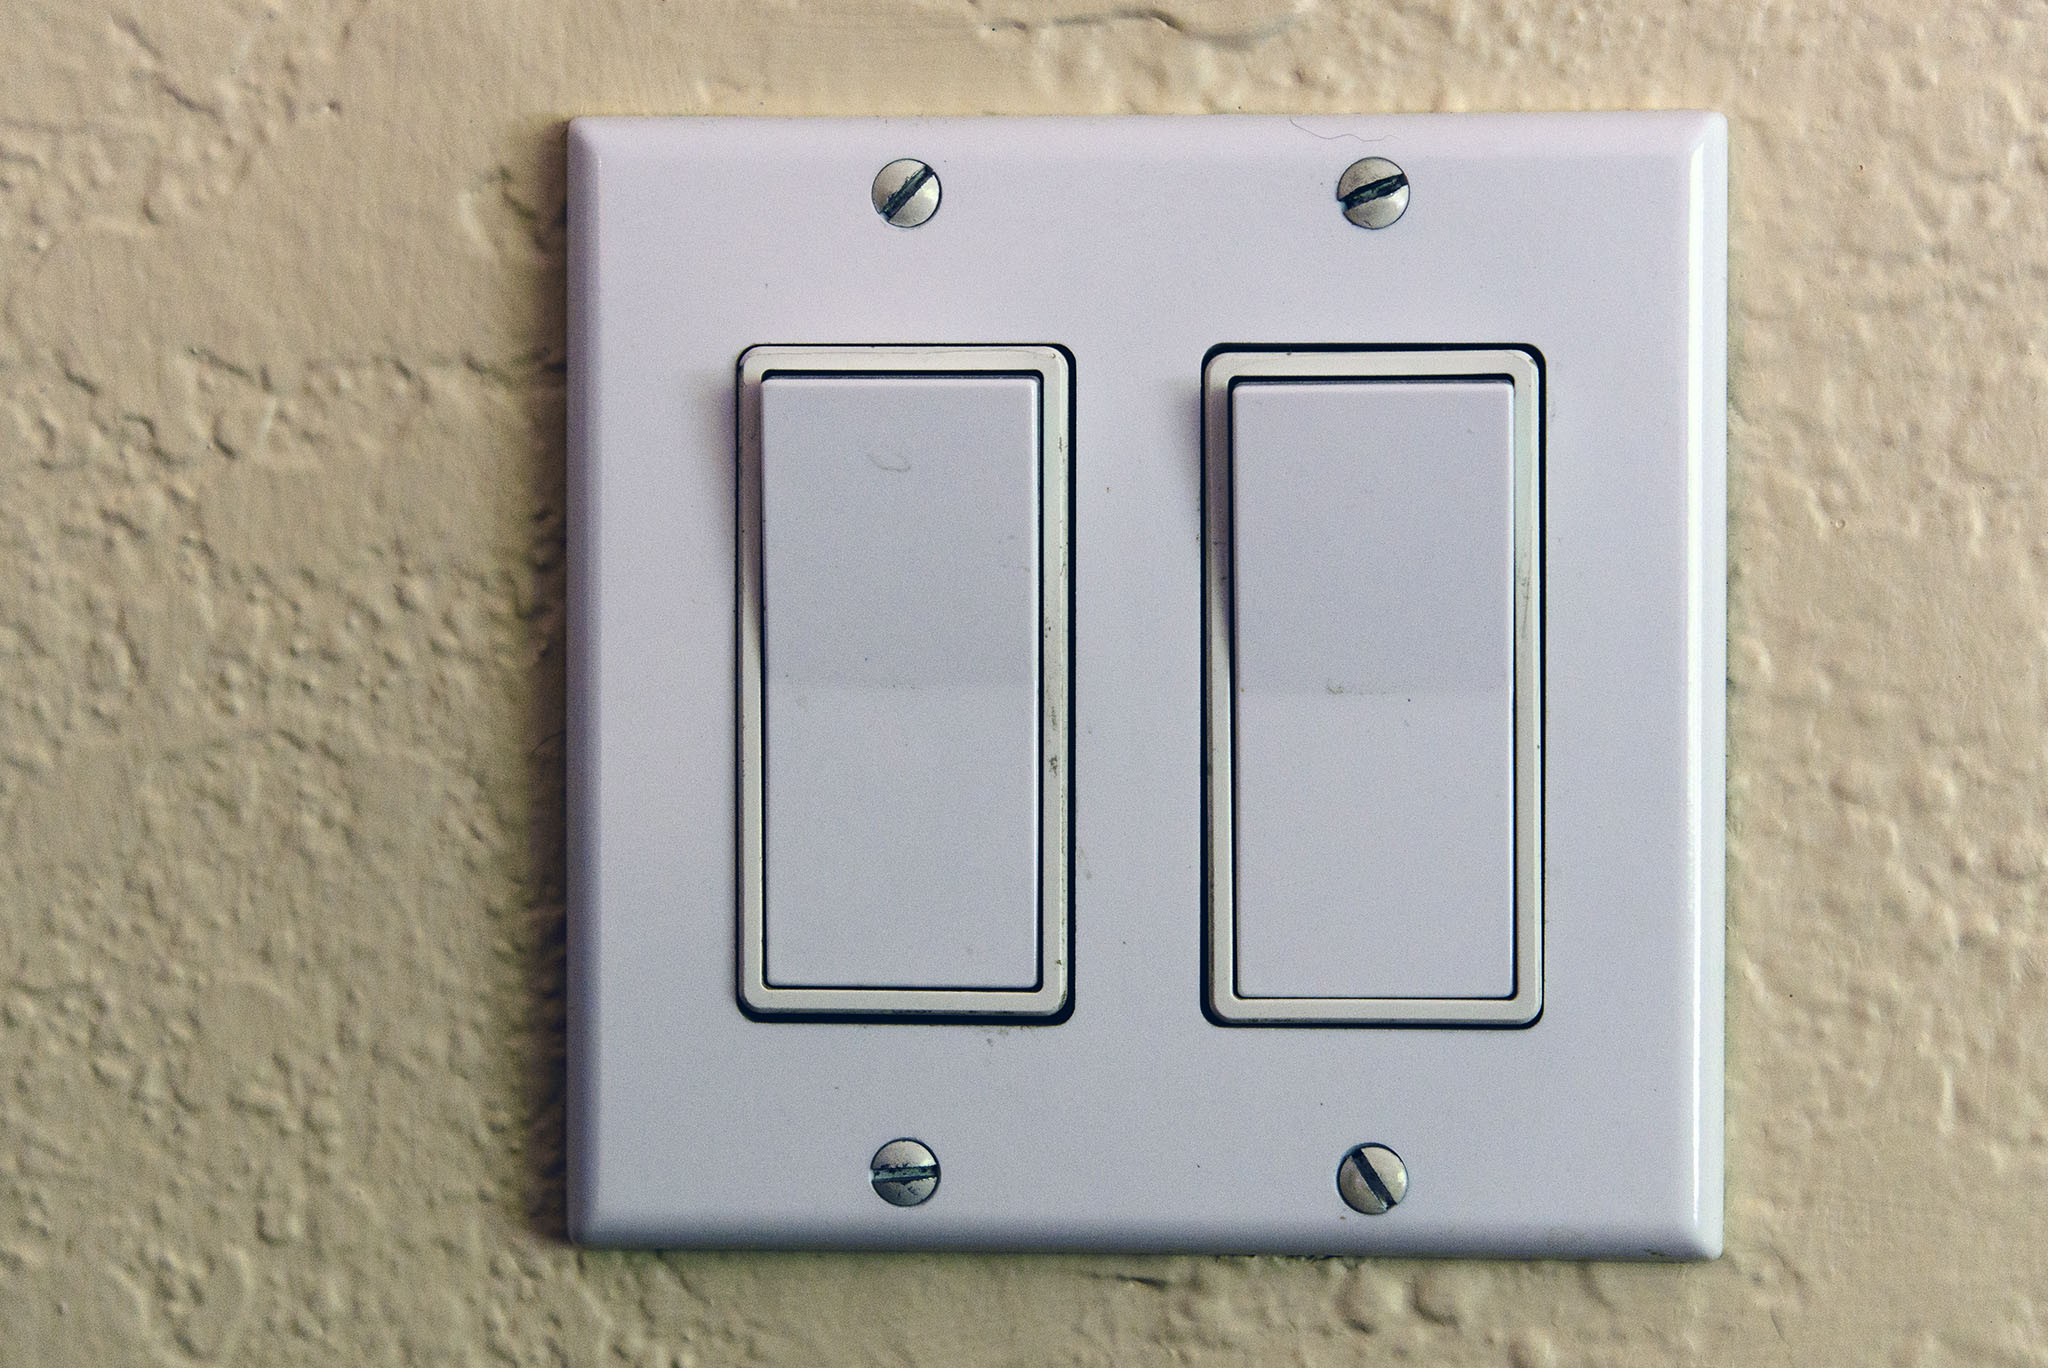 How To Improve Your Home With Led Lighting Tested Rewiring Old Doorbell Step 3 Install The Switch